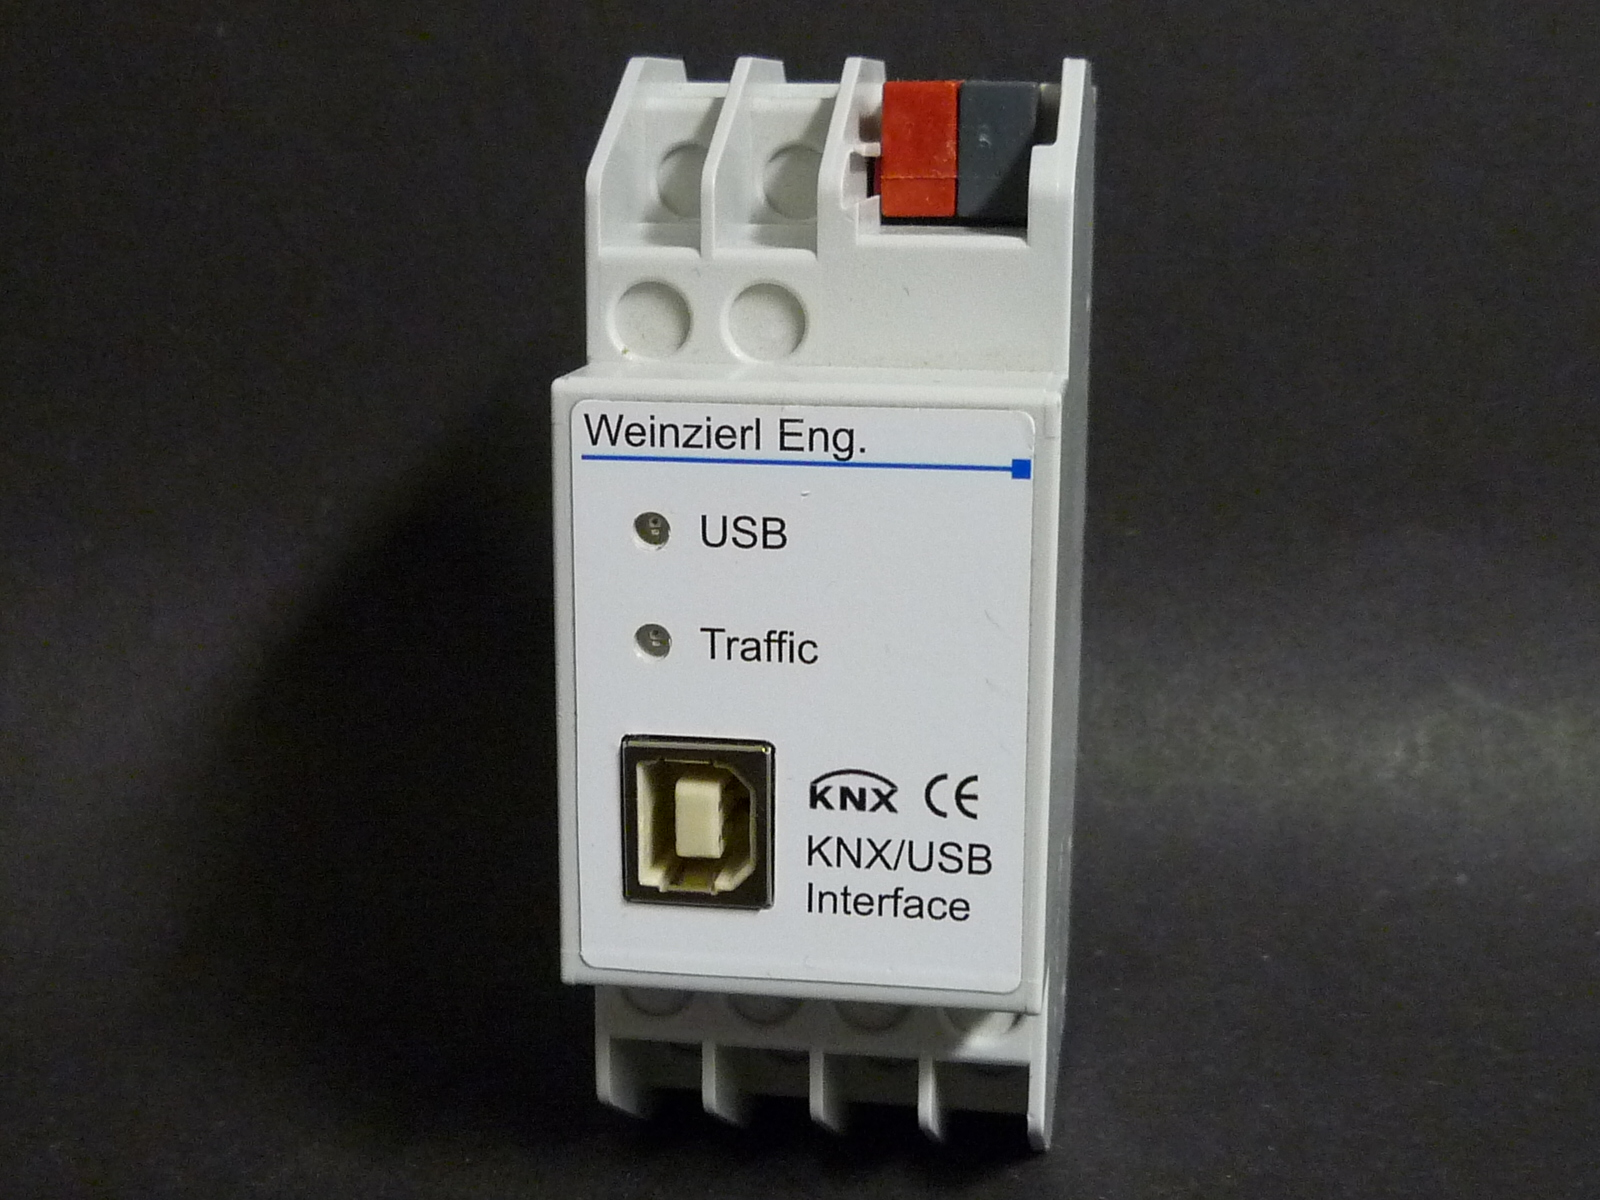 weinzierl eib knx usb schnittstelle interface reg 310 ebay. Black Bedroom Furniture Sets. Home Design Ideas